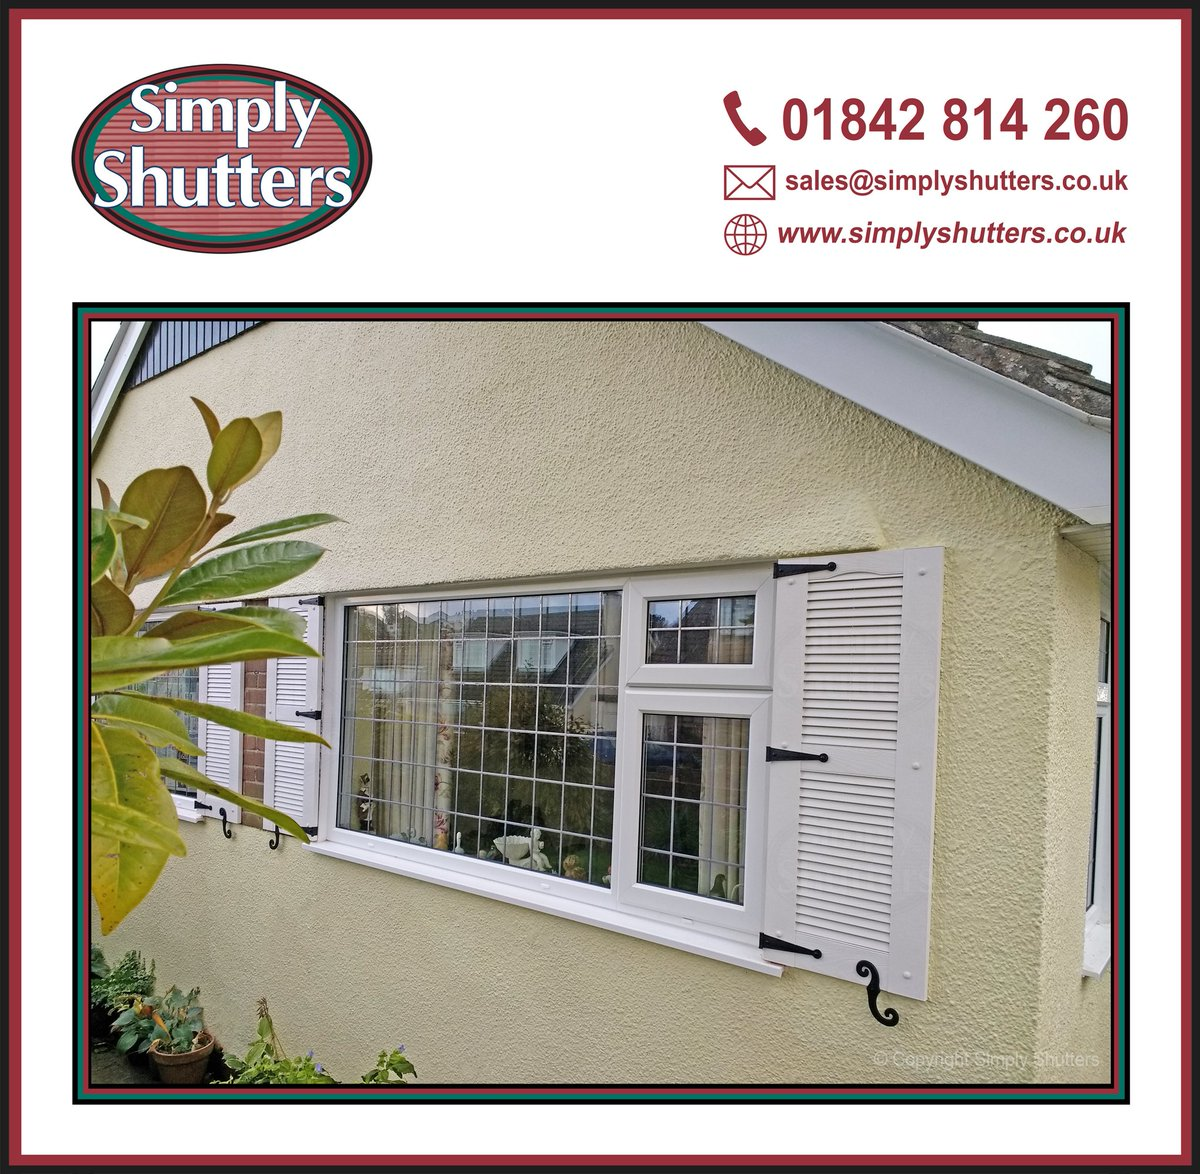 Simply Shutters On Twitter One Of Our Lovely Customers